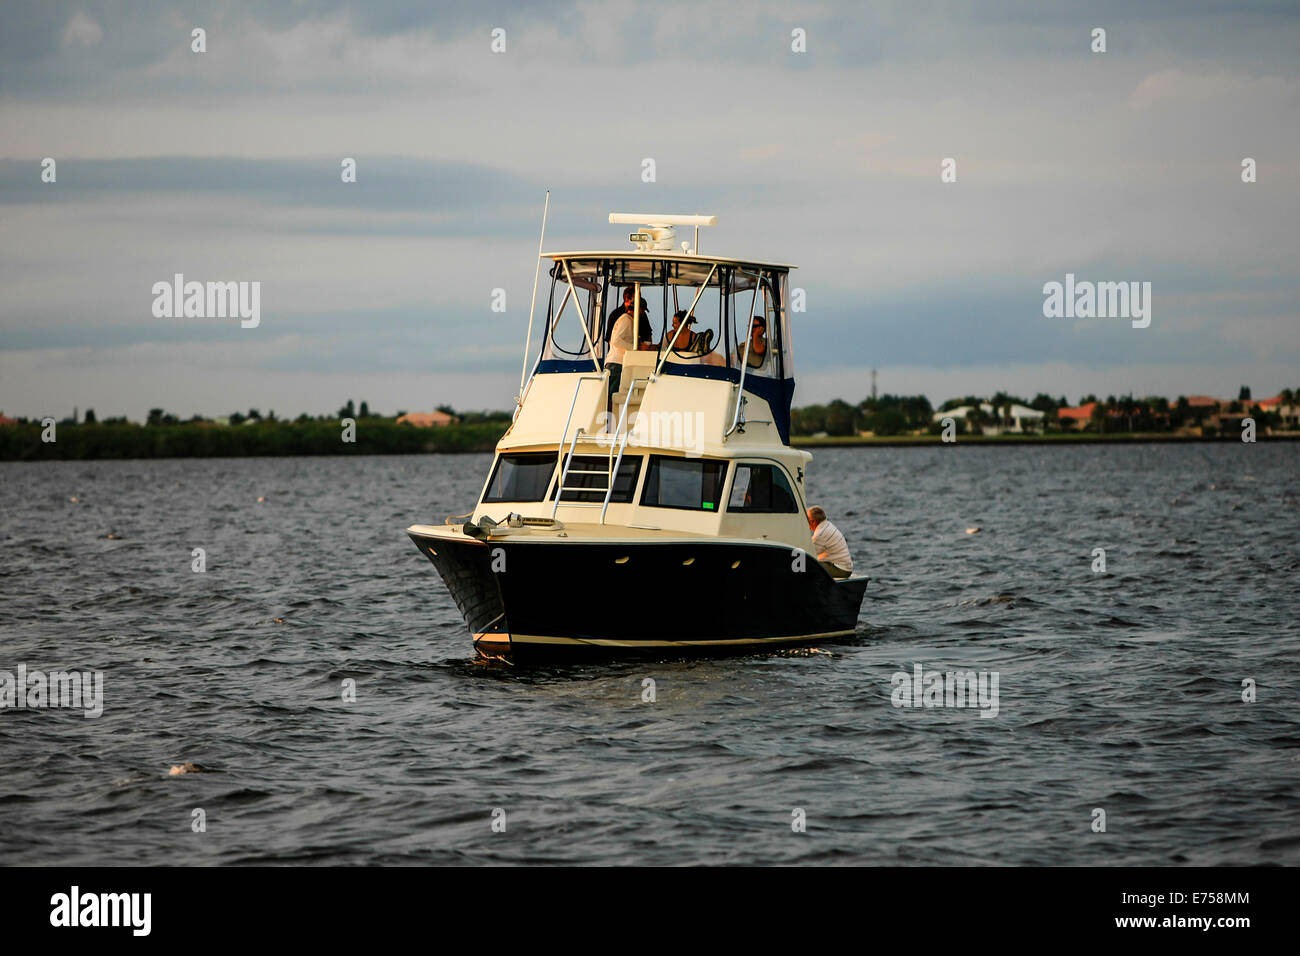 Champagne at sundown on a boat anchored in the Peace River Estuary FL - Stock Image